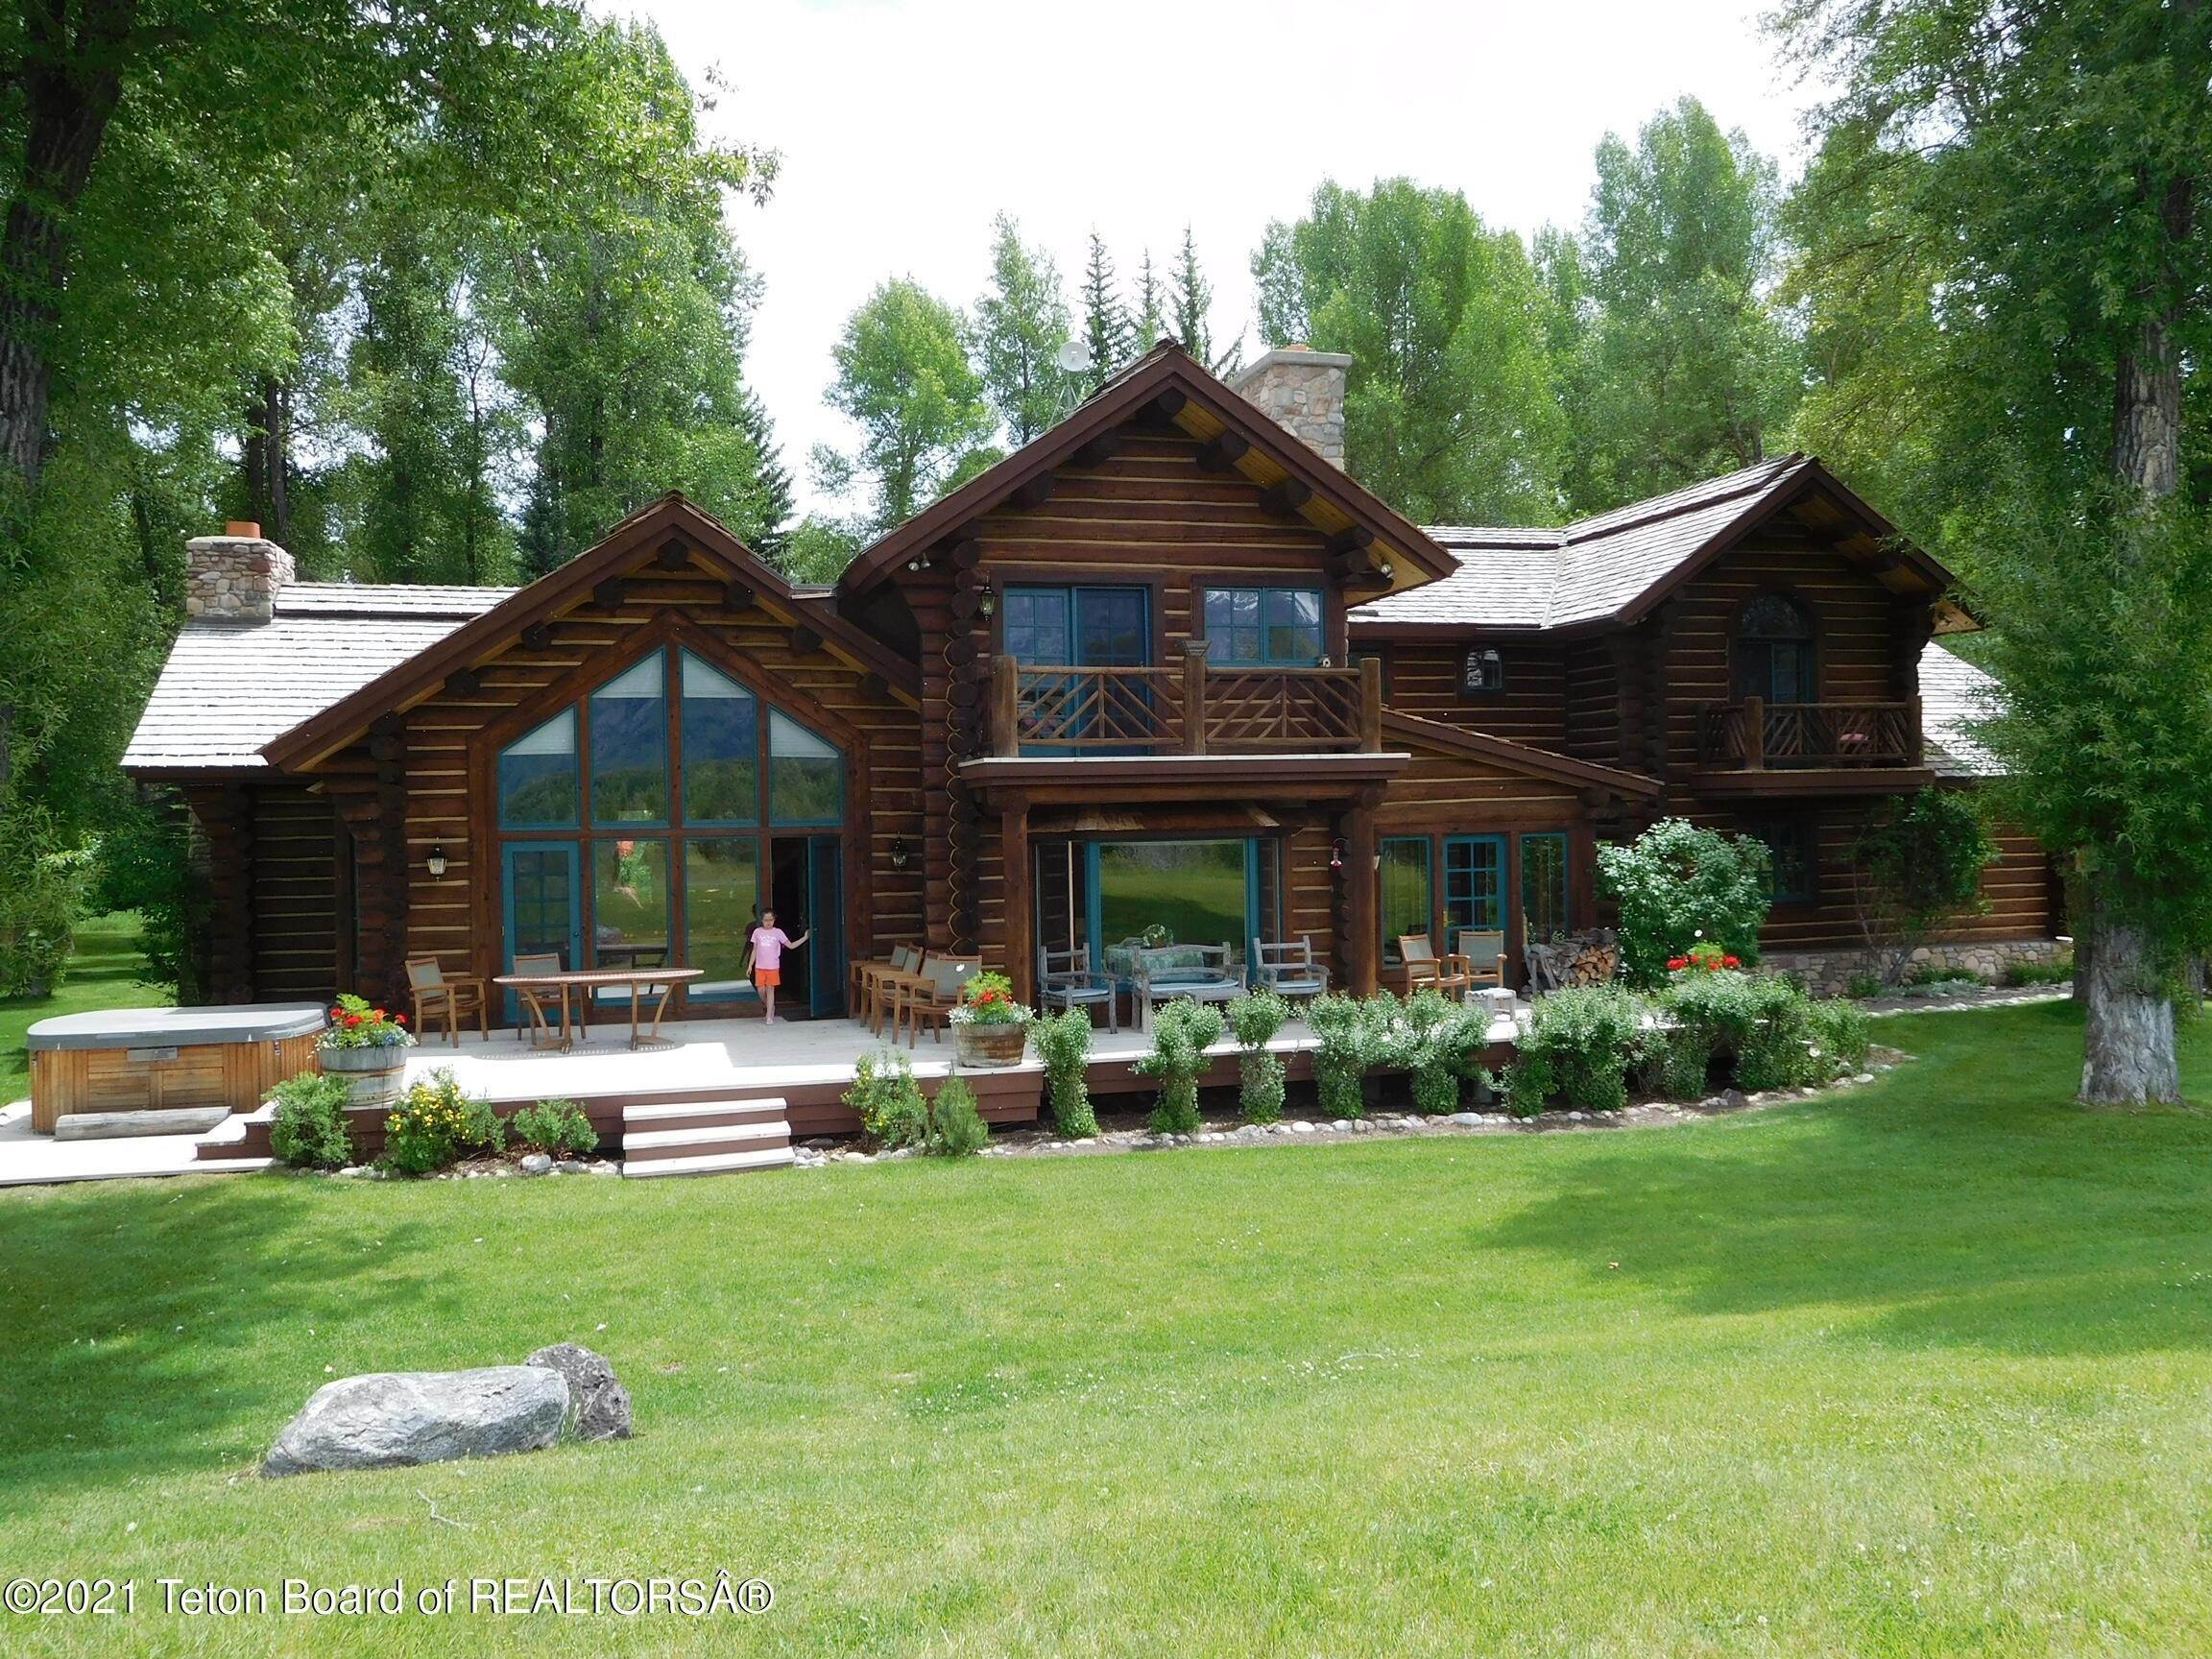 2. Single Family Homes for Sale at 5155/5095 N PRINCE PLACE Jackson, Wyoming 83001 United States